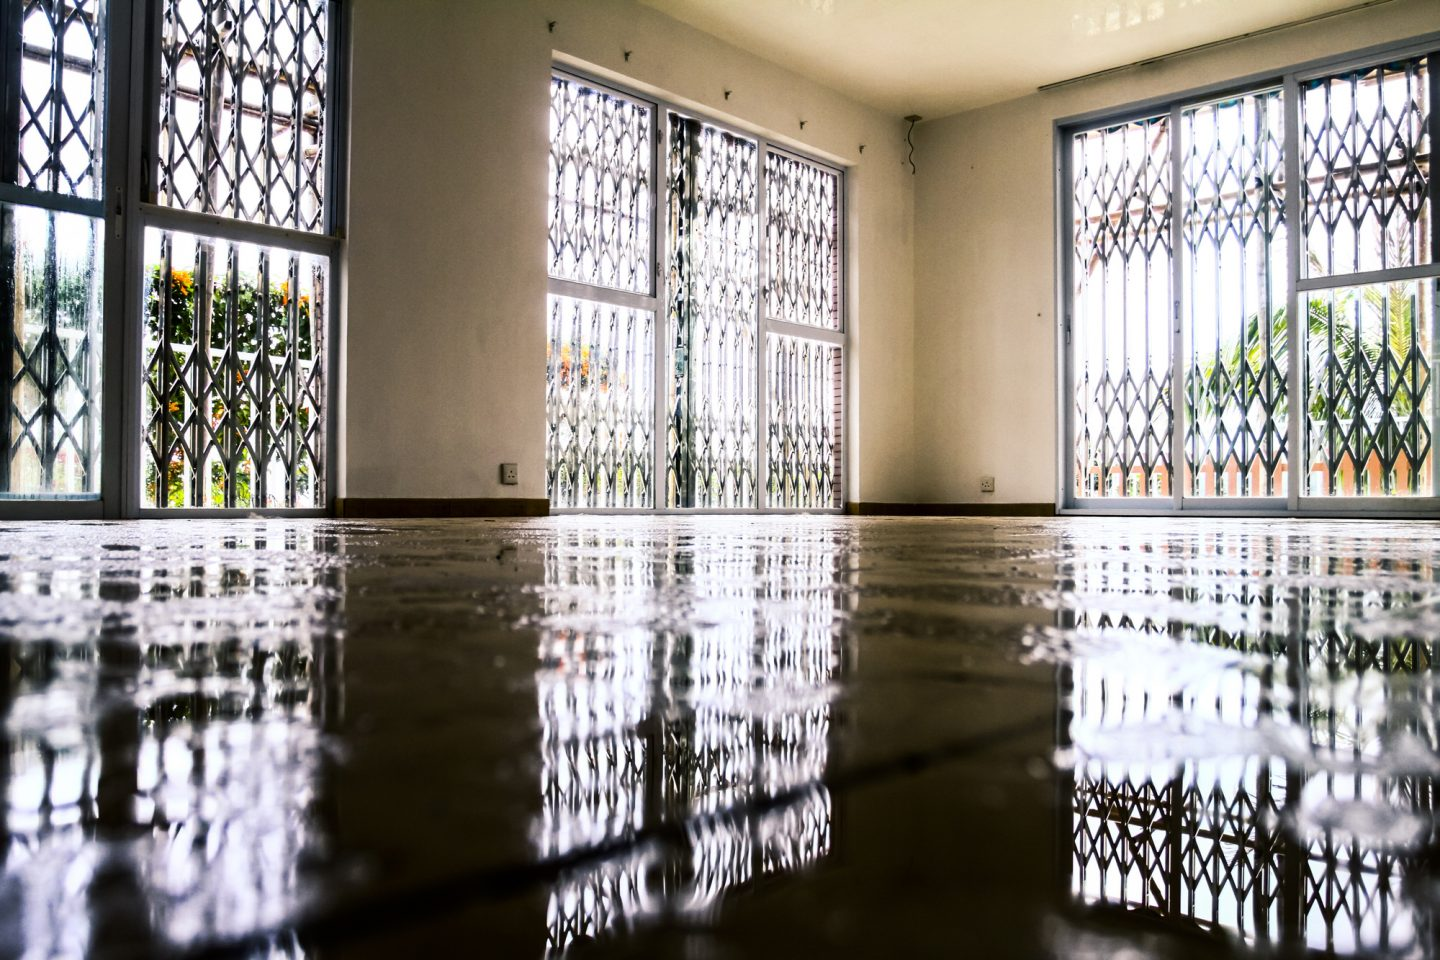 Preparing For a Flood: How to Keep Your Home Protected